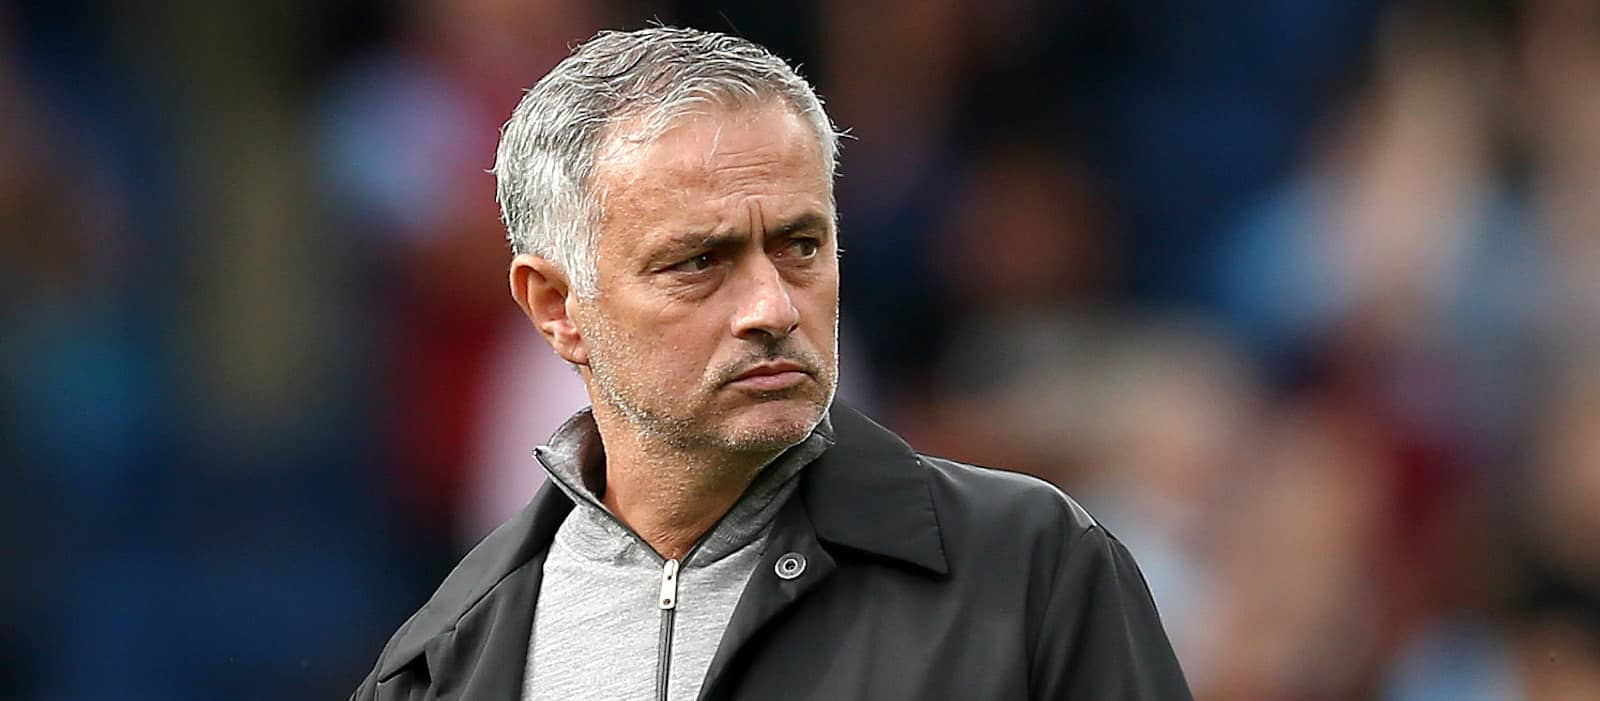 Jose Mourinho: Old Trafford moment one to remember